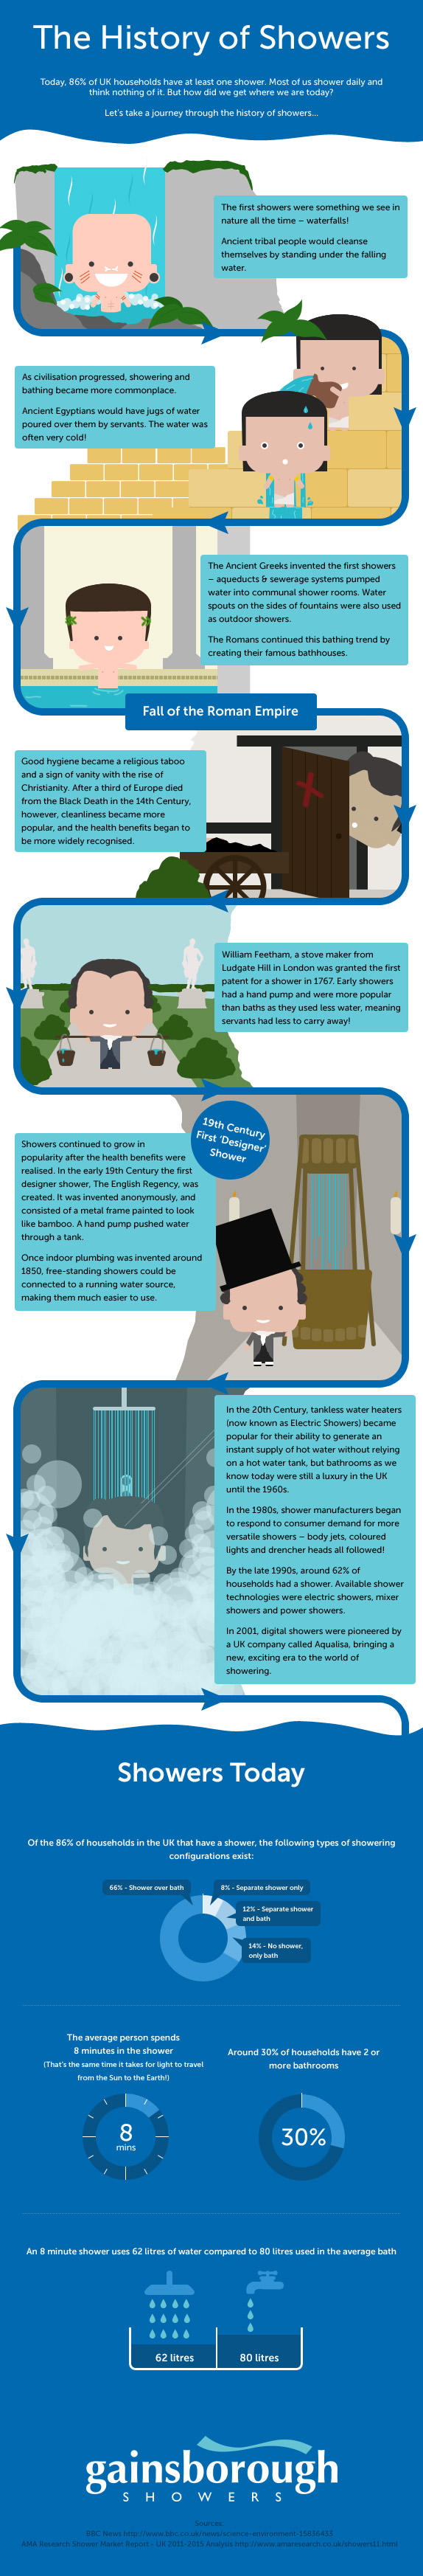 The History of Showers | Visual.ly